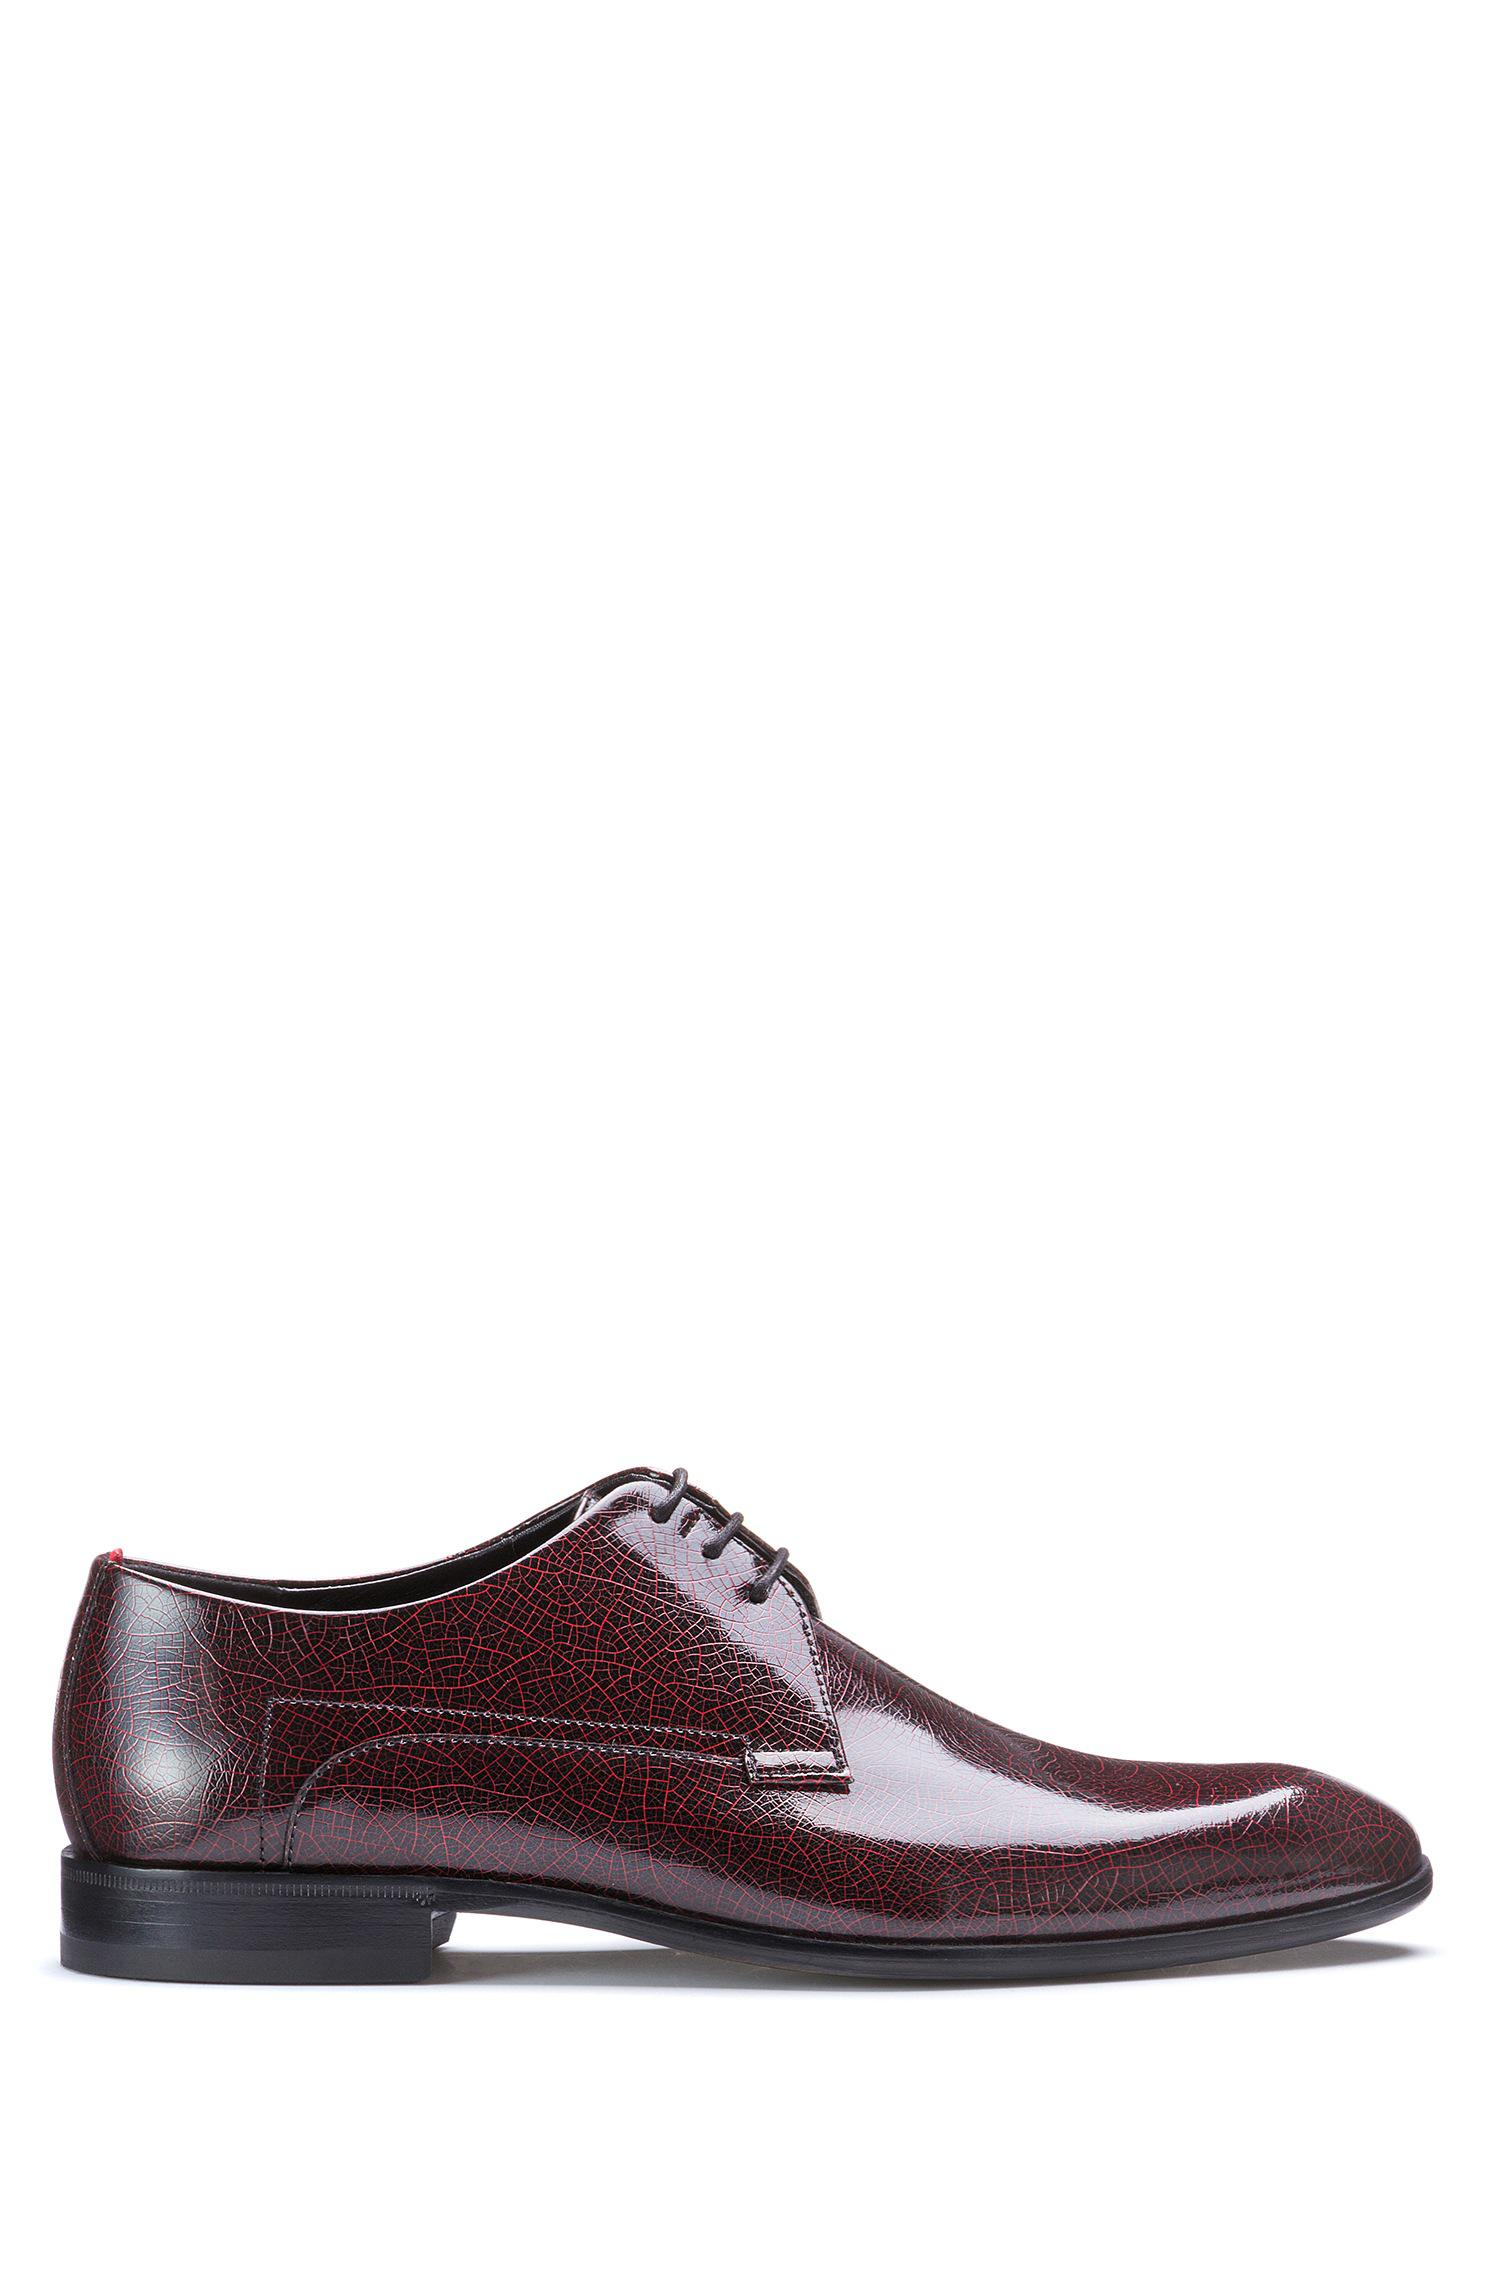 Hugo Patent Calf-leather Derby Shoes in Red for Men